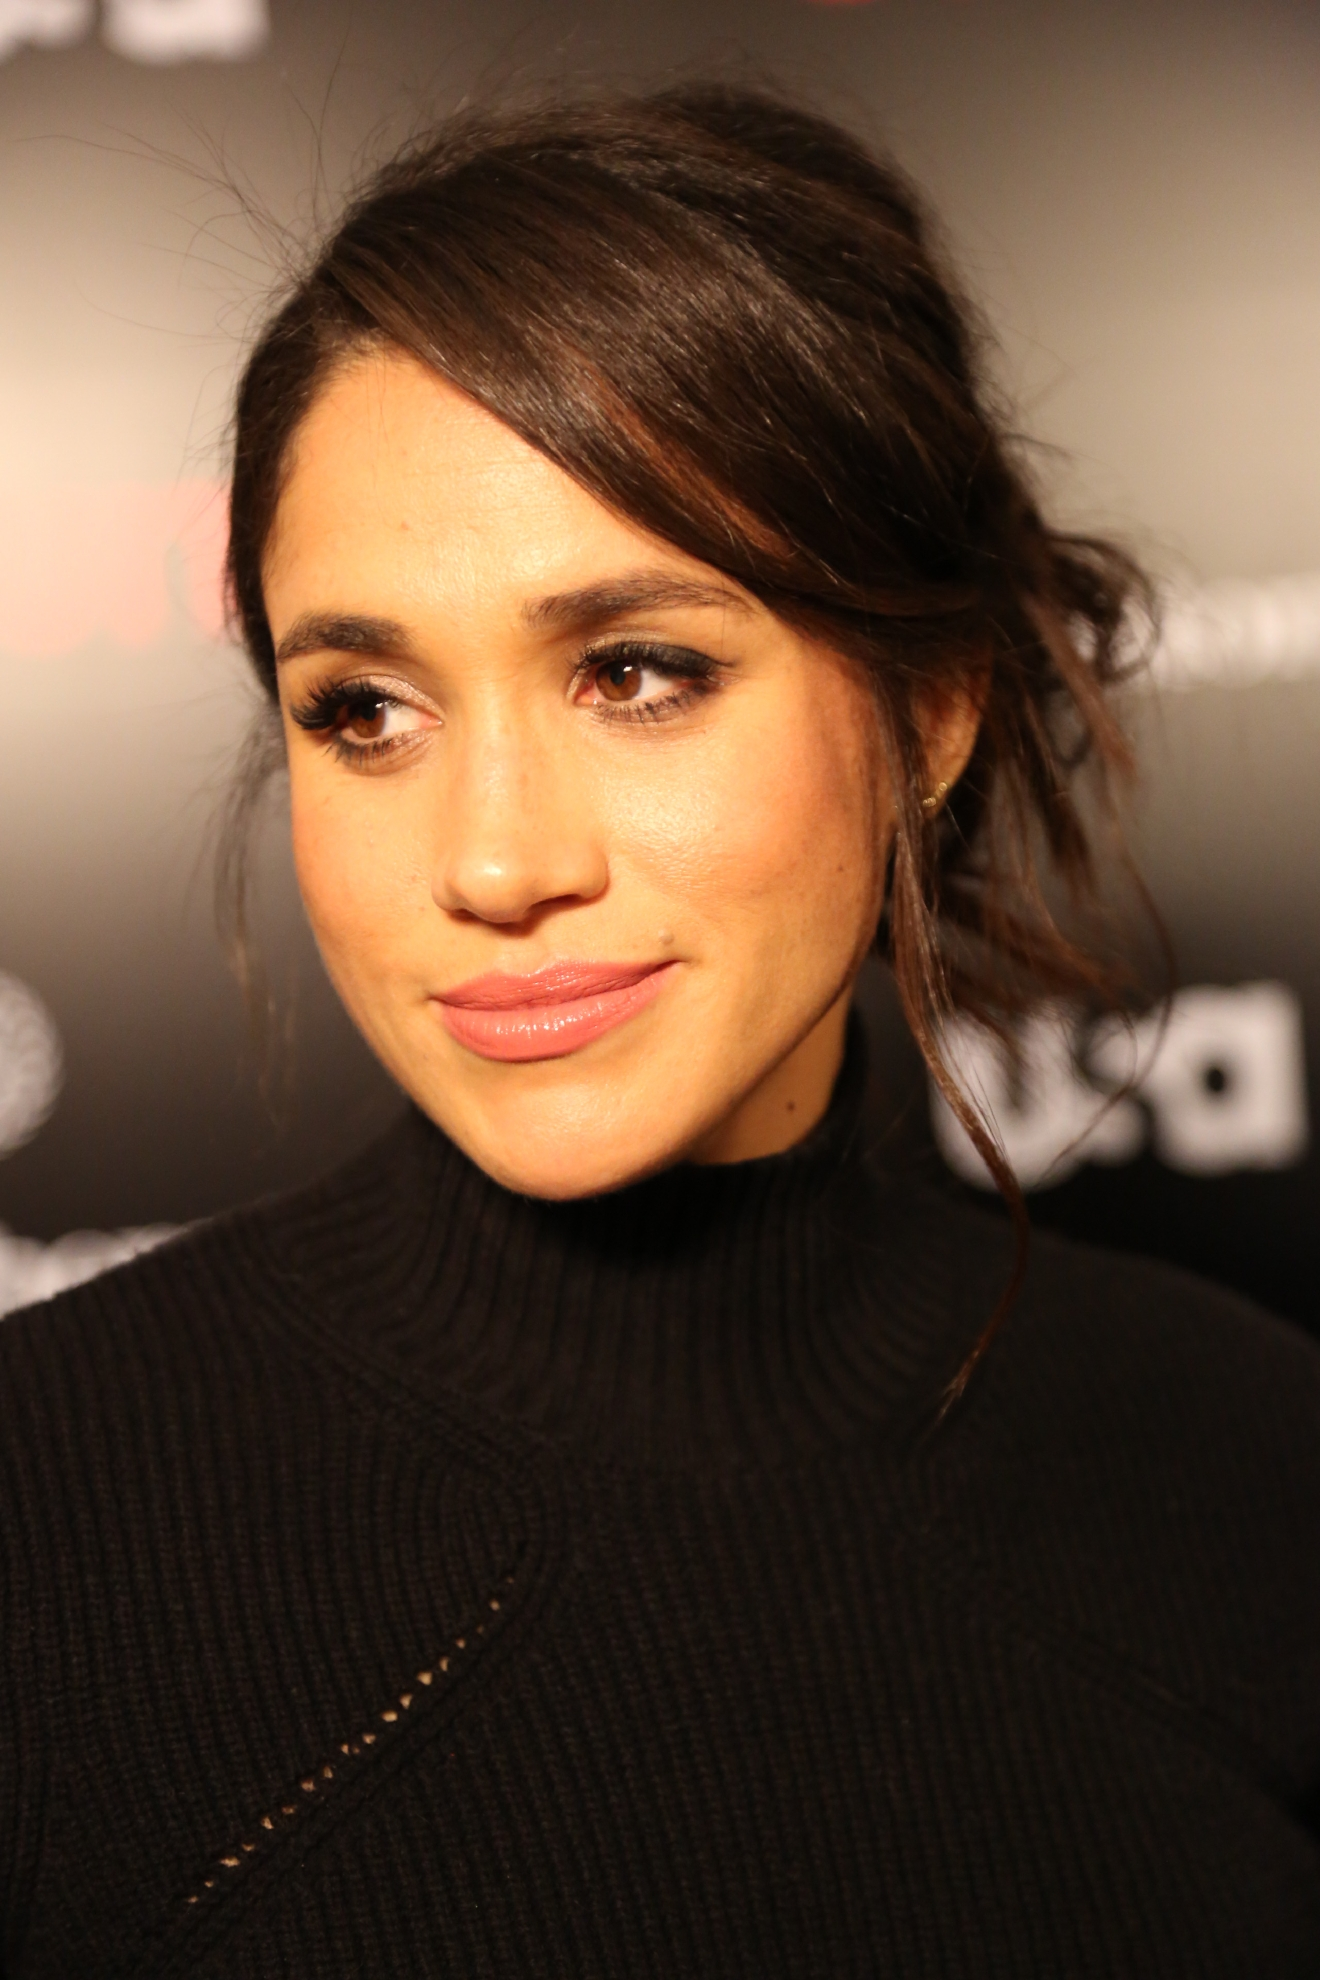 Premiere of USA Network's 'Suits' Season 5 at the Sheraton Los Angeles Downtown Hotel                                    Featuring: Meghan Markle                  Where: Los Angeles, California, United States                  When: 22 Jan 2016                  Credit: Guillermo Proano/WENN.com